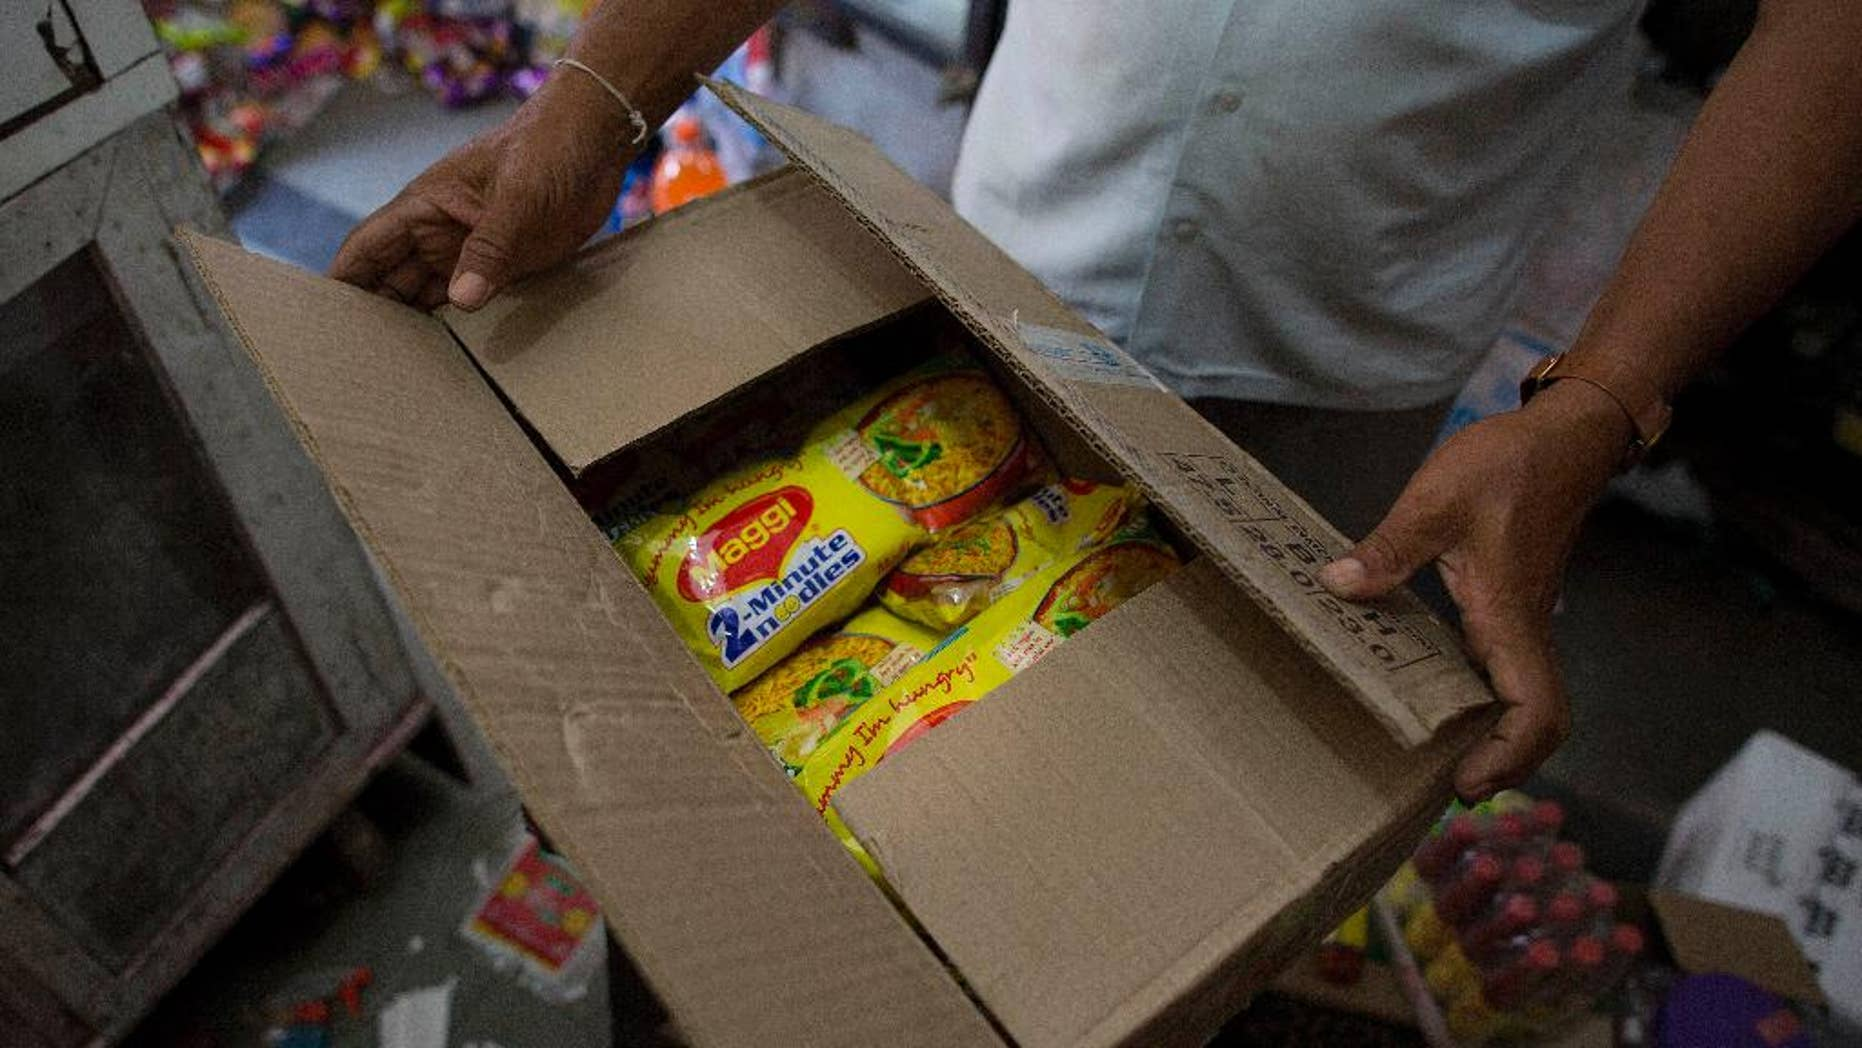 FILE-This June 5, 2015 file photo shows packs of Nestle India's Maggi noodles being stored after they were removed from the shelves of a grocery store in Gauhati, India. Maggi noodles are back on shelves in India five months after the popular snack was found to contain lead above permissible limits.(AP Photo/Anupam Nath, file)